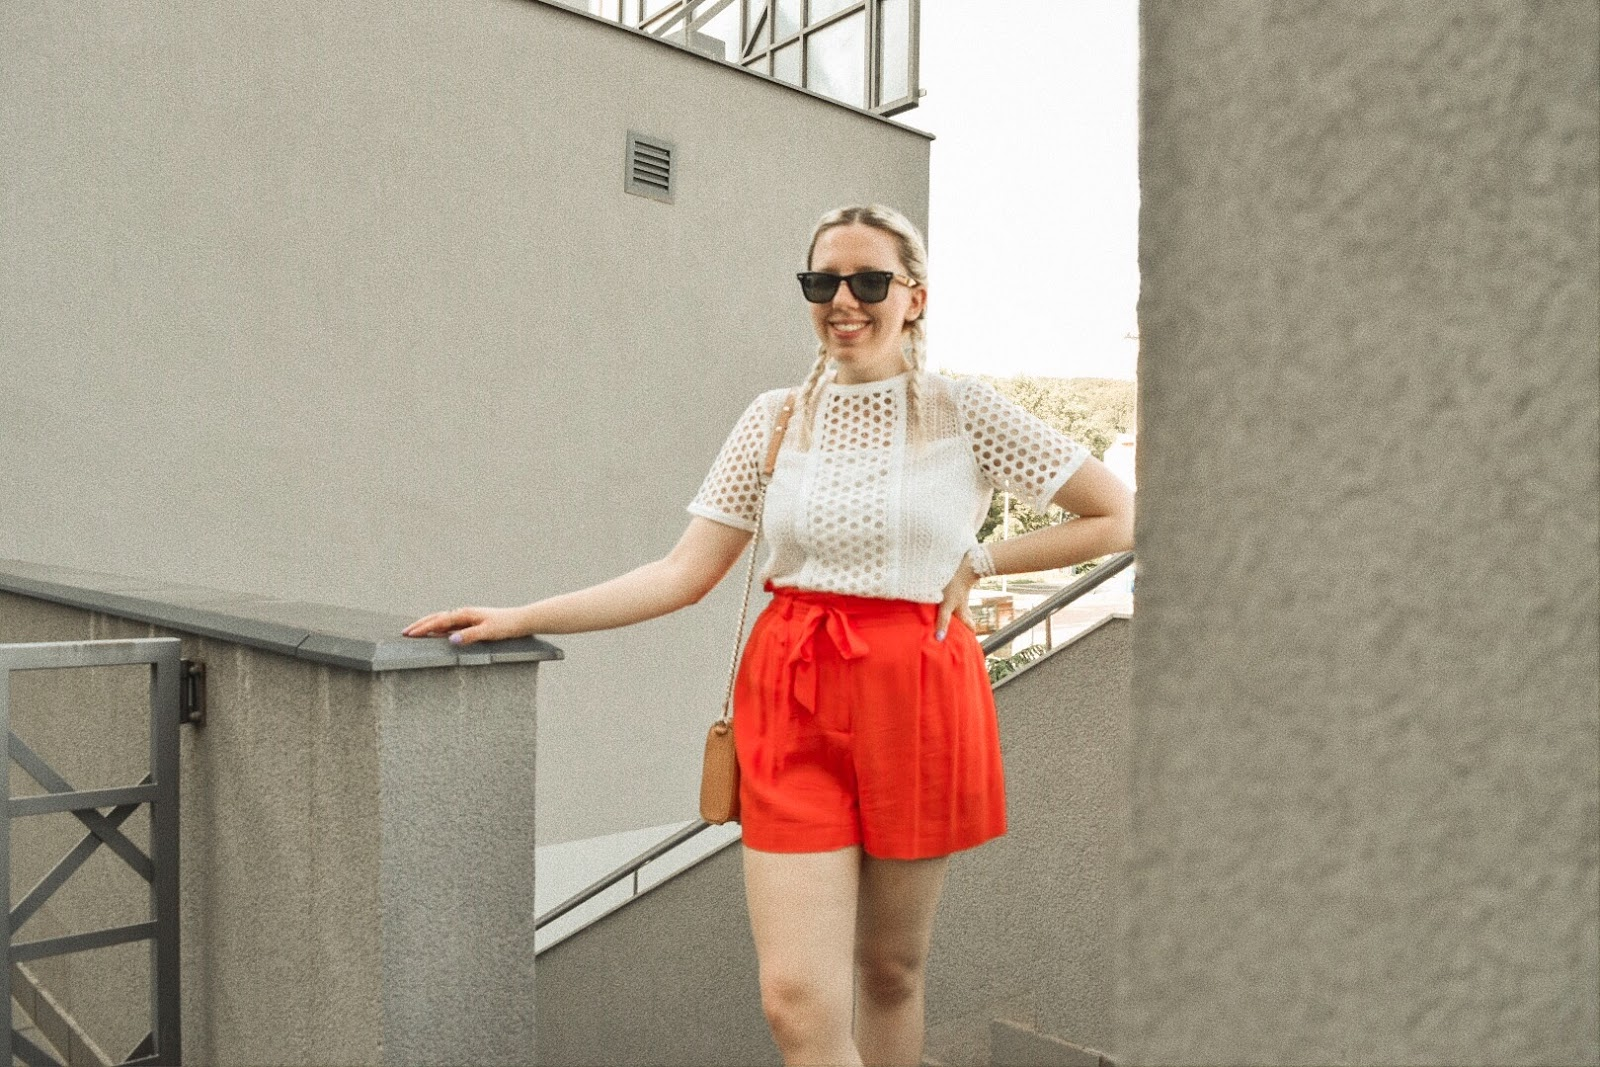 Fashion blogger wearing white top and orange shorts